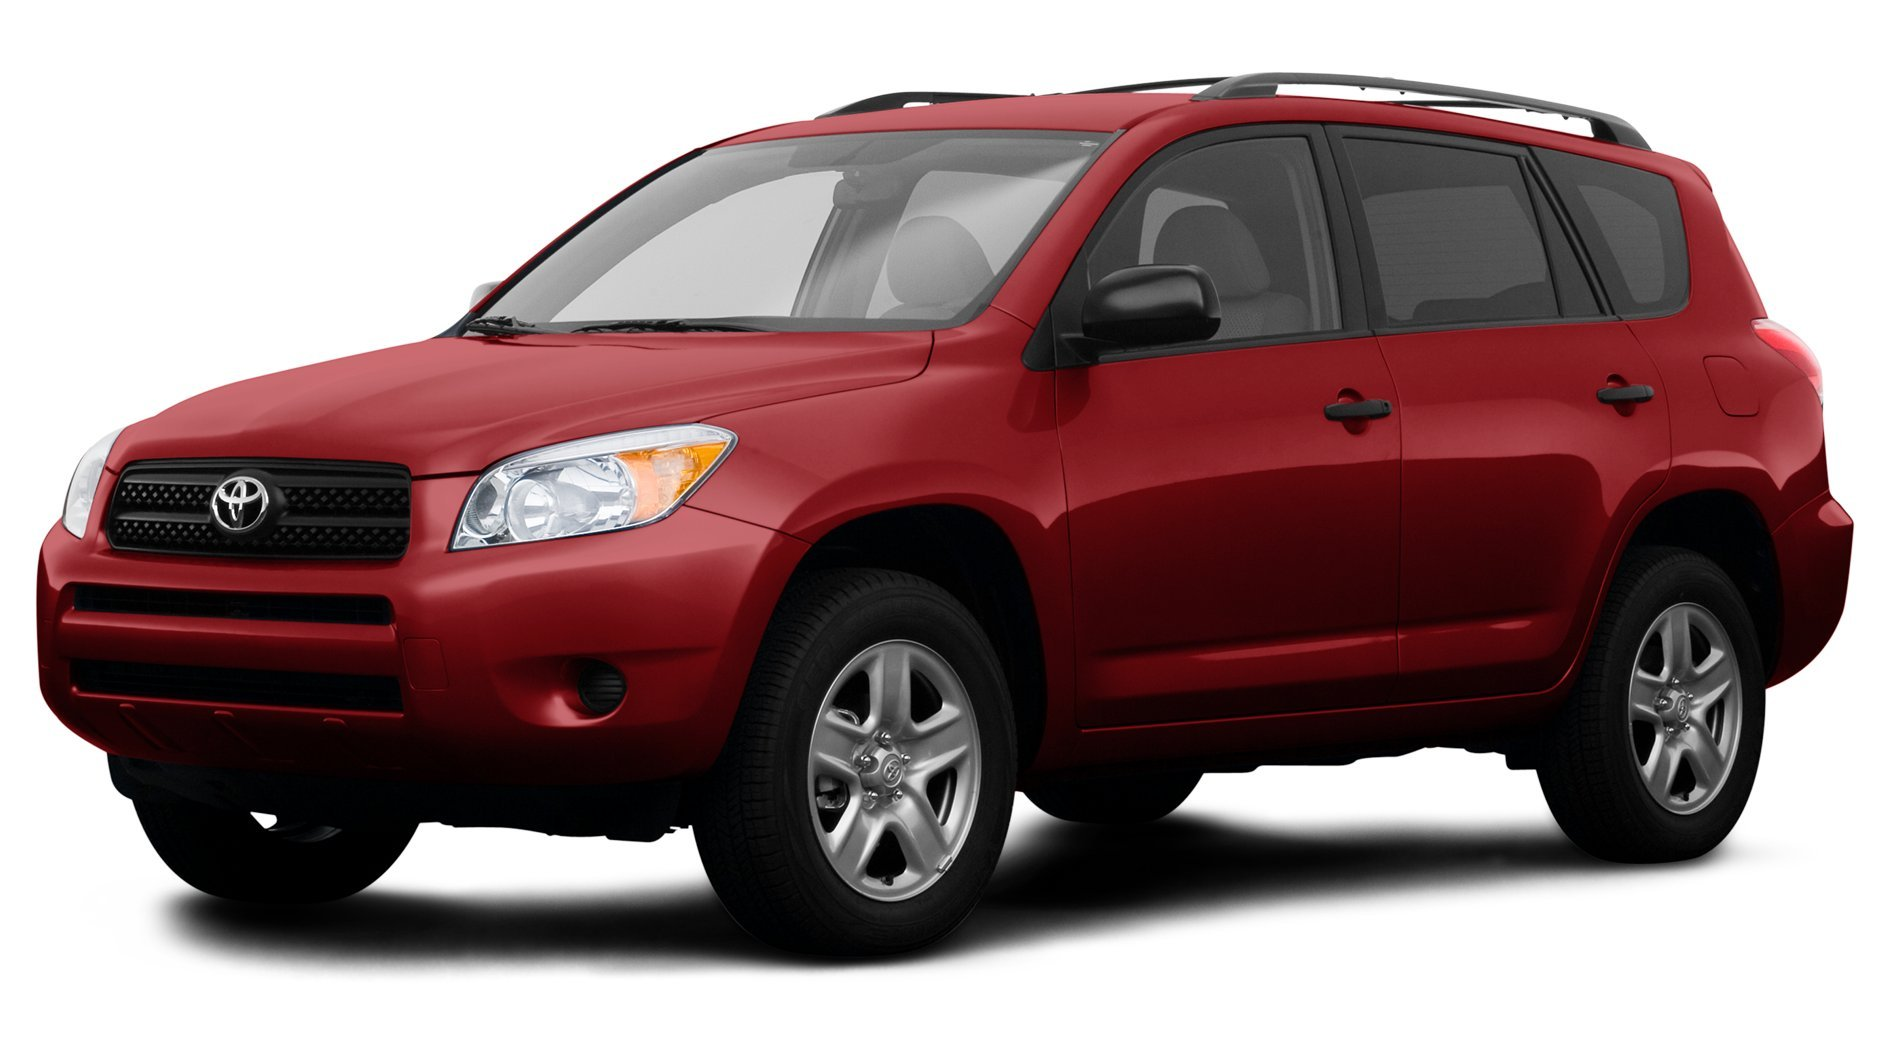 2008 toyota rav4 reviews images and specs vehicles. Black Bedroom Furniture Sets. Home Design Ideas